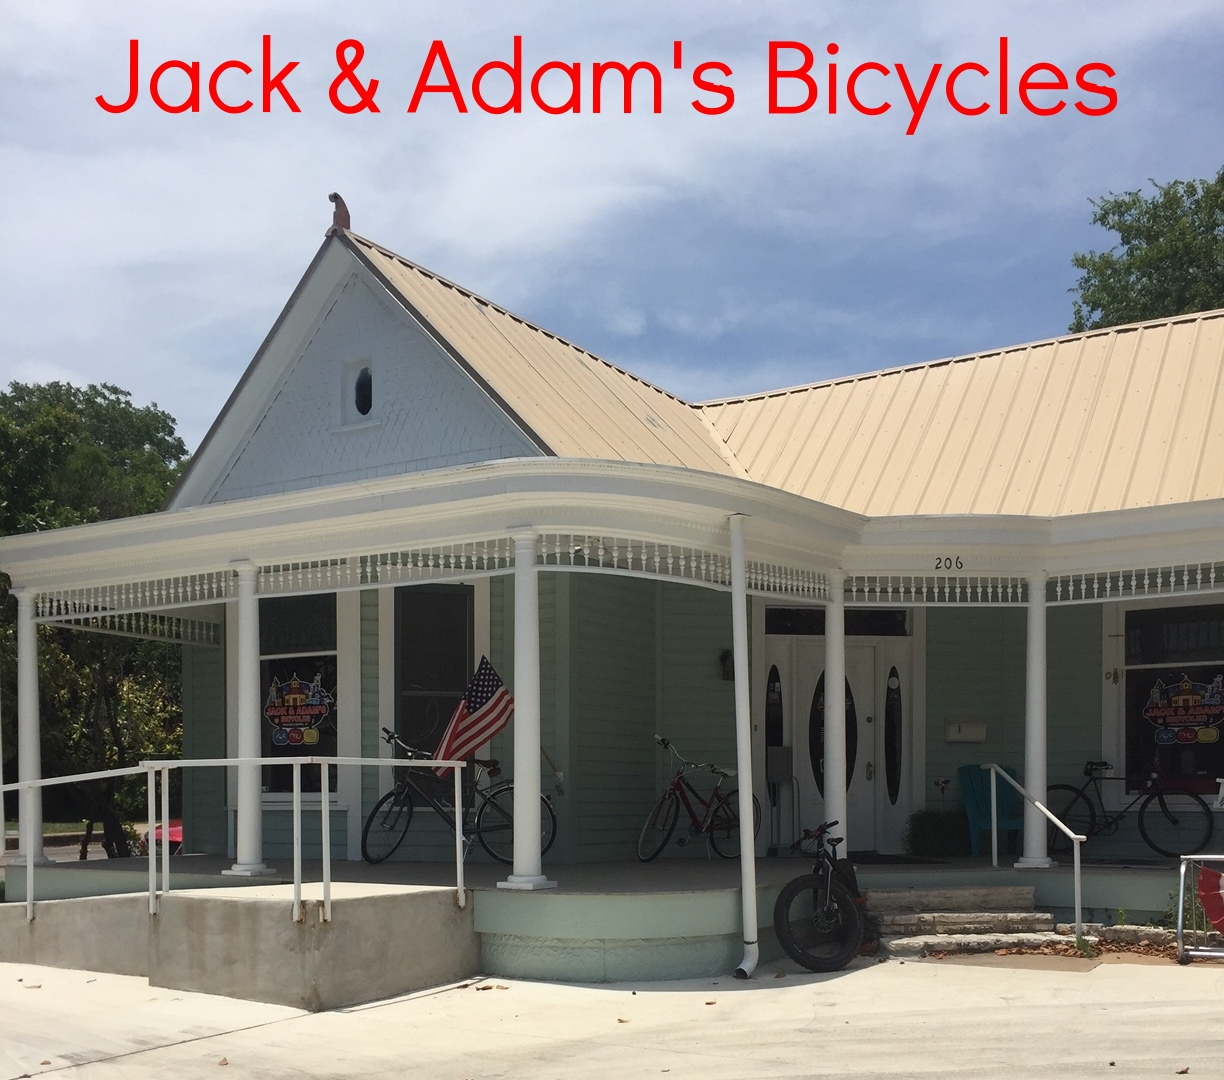 JACK & ADAM'S BICYCLES